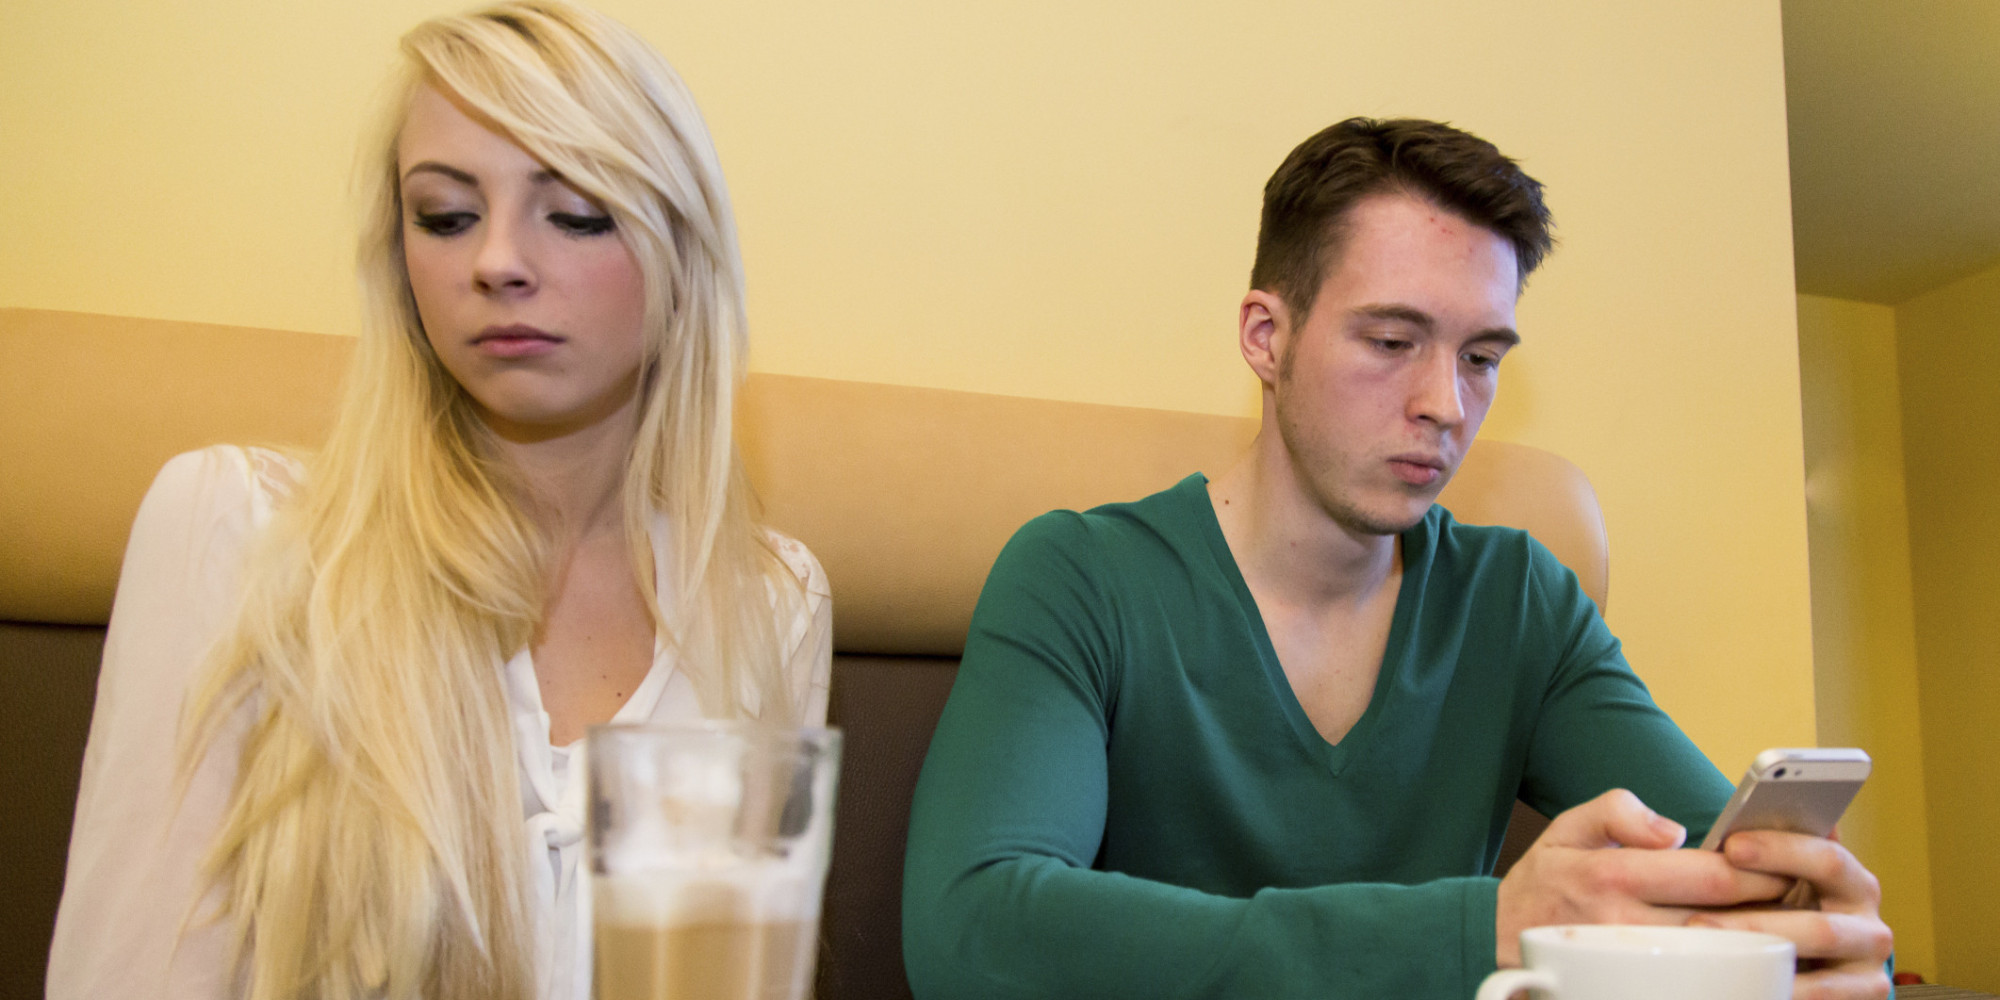 Is Your Small Business Website Like a Bad First Date? | HuffPost